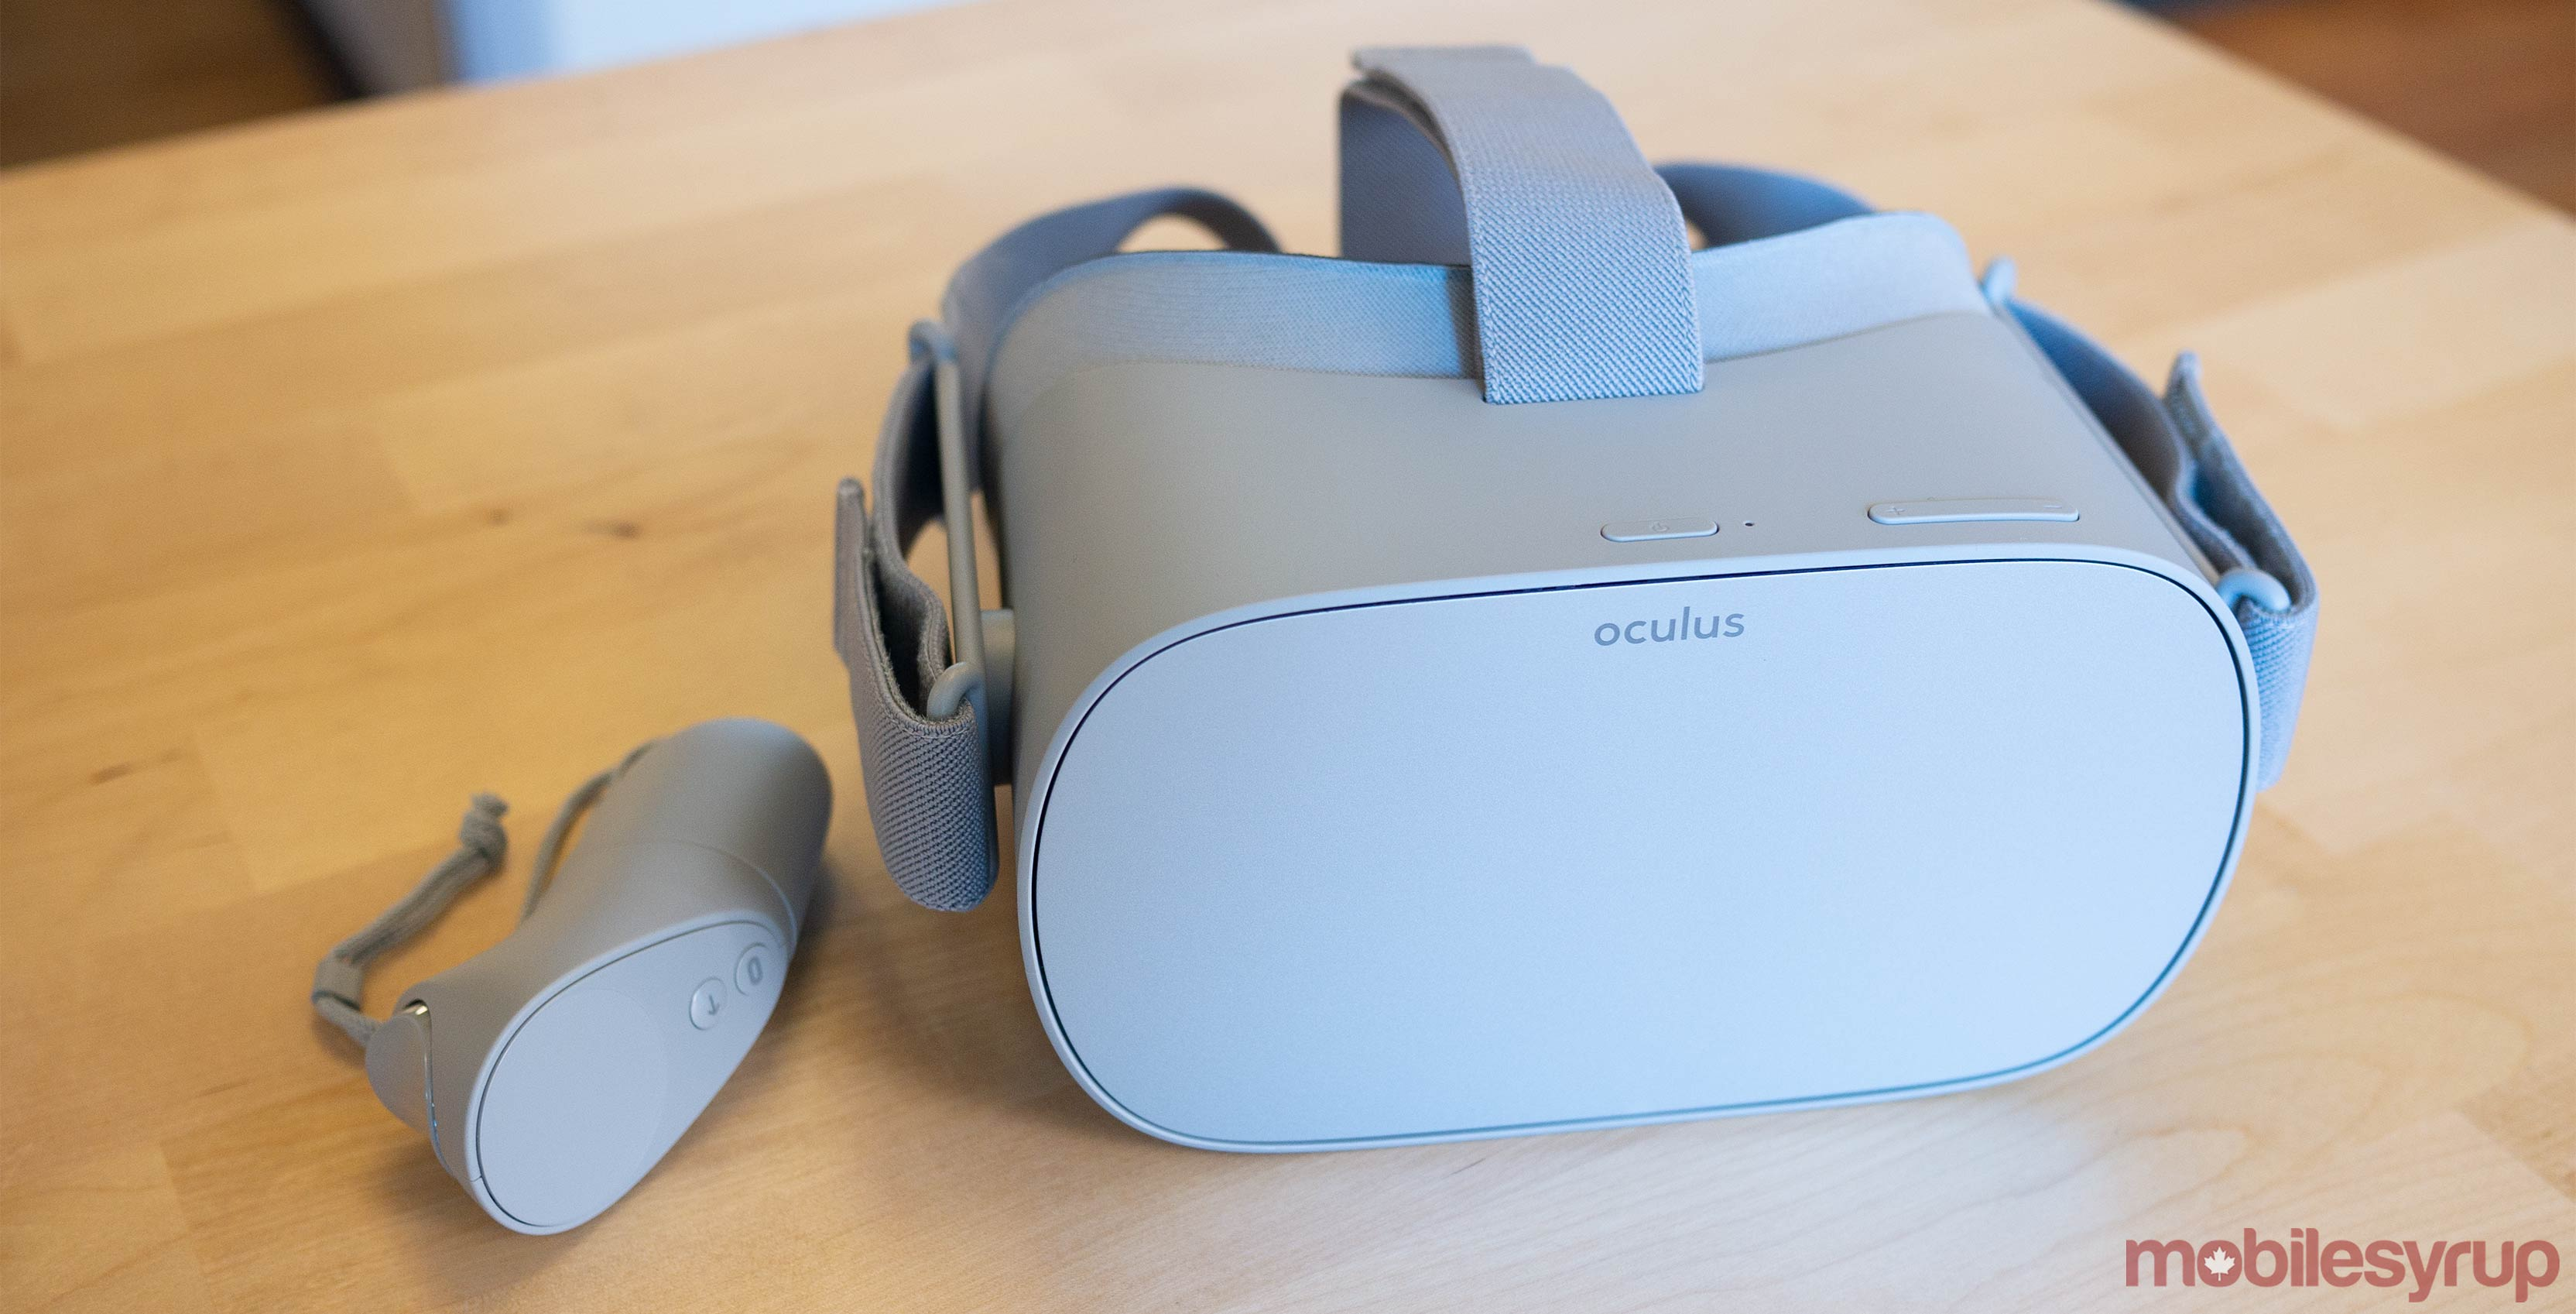 Facebook and Zenimax settle $250 million Oculus VR lawsuit